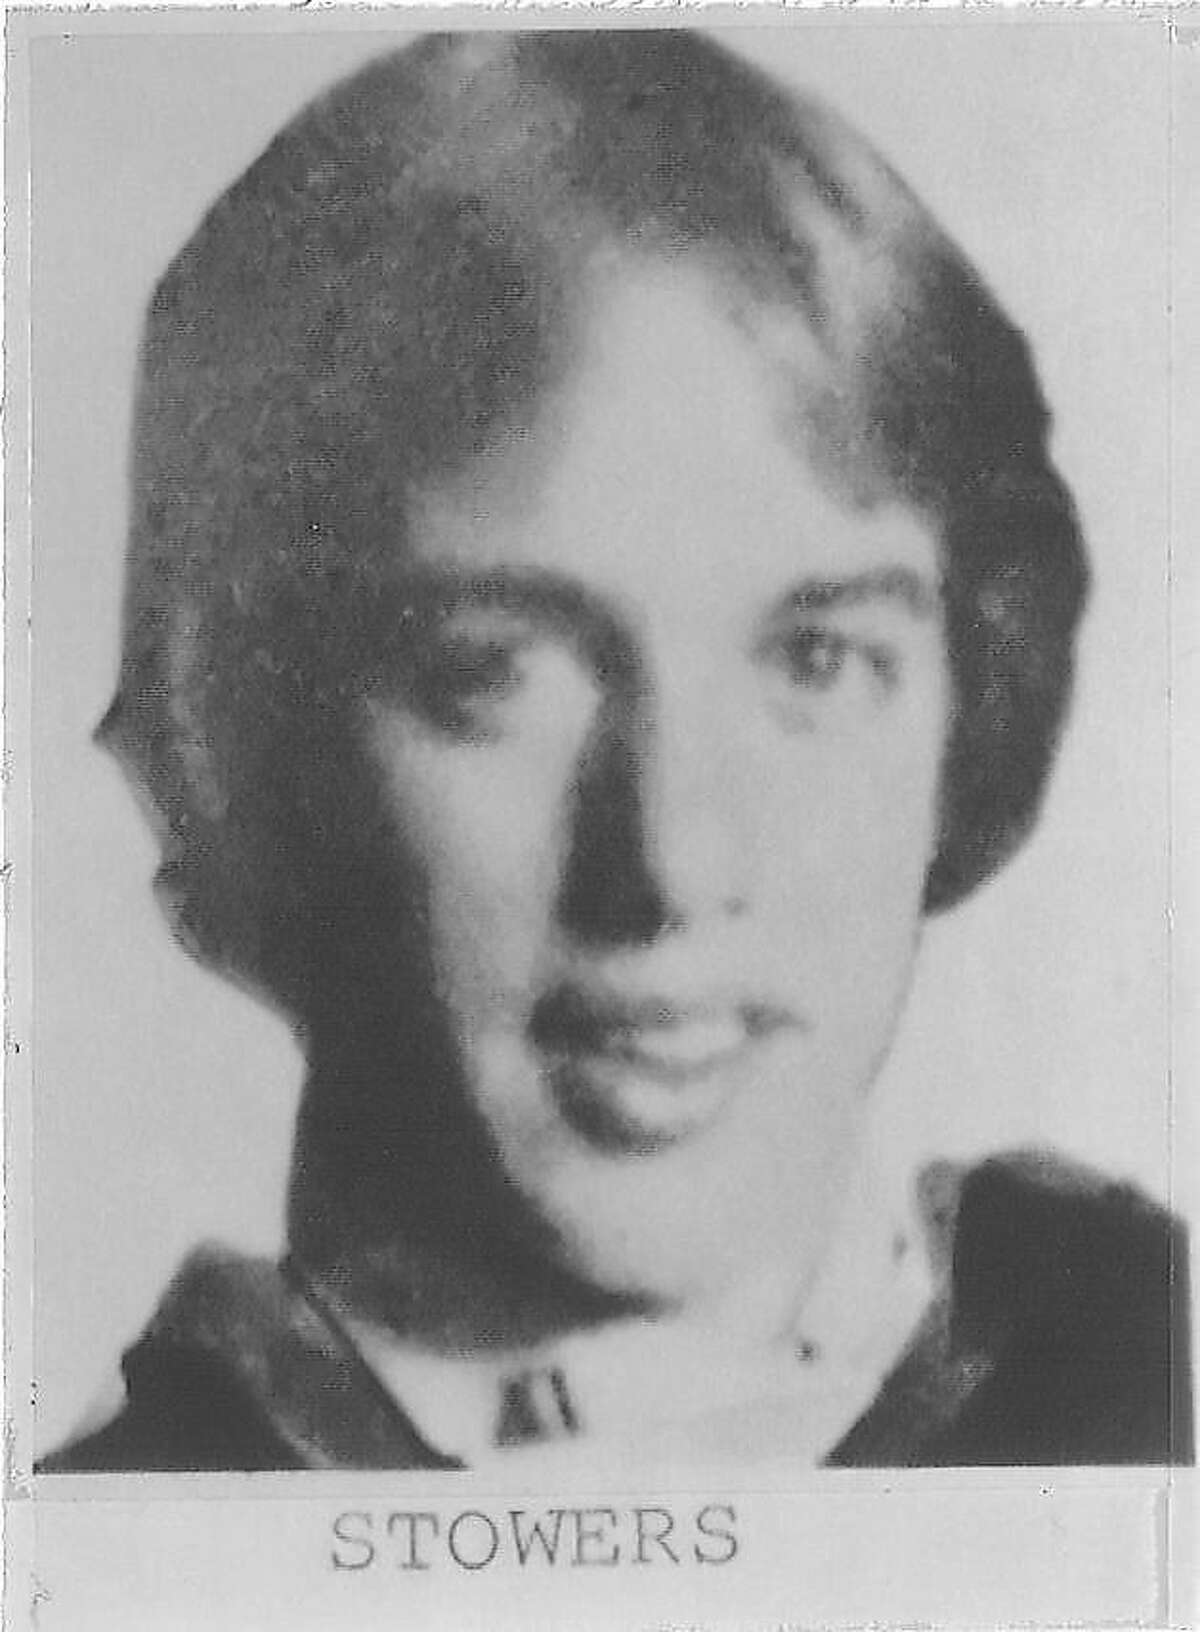 Richard Stowers, 19, of Petaluma, was shot to death, along with his fiance, Cynthia Moreland, on Mount Wittenberg at Point Reyes National Seashore on Oct. 11, 1980, by the Trailside Killer David Joseph Carpenter.